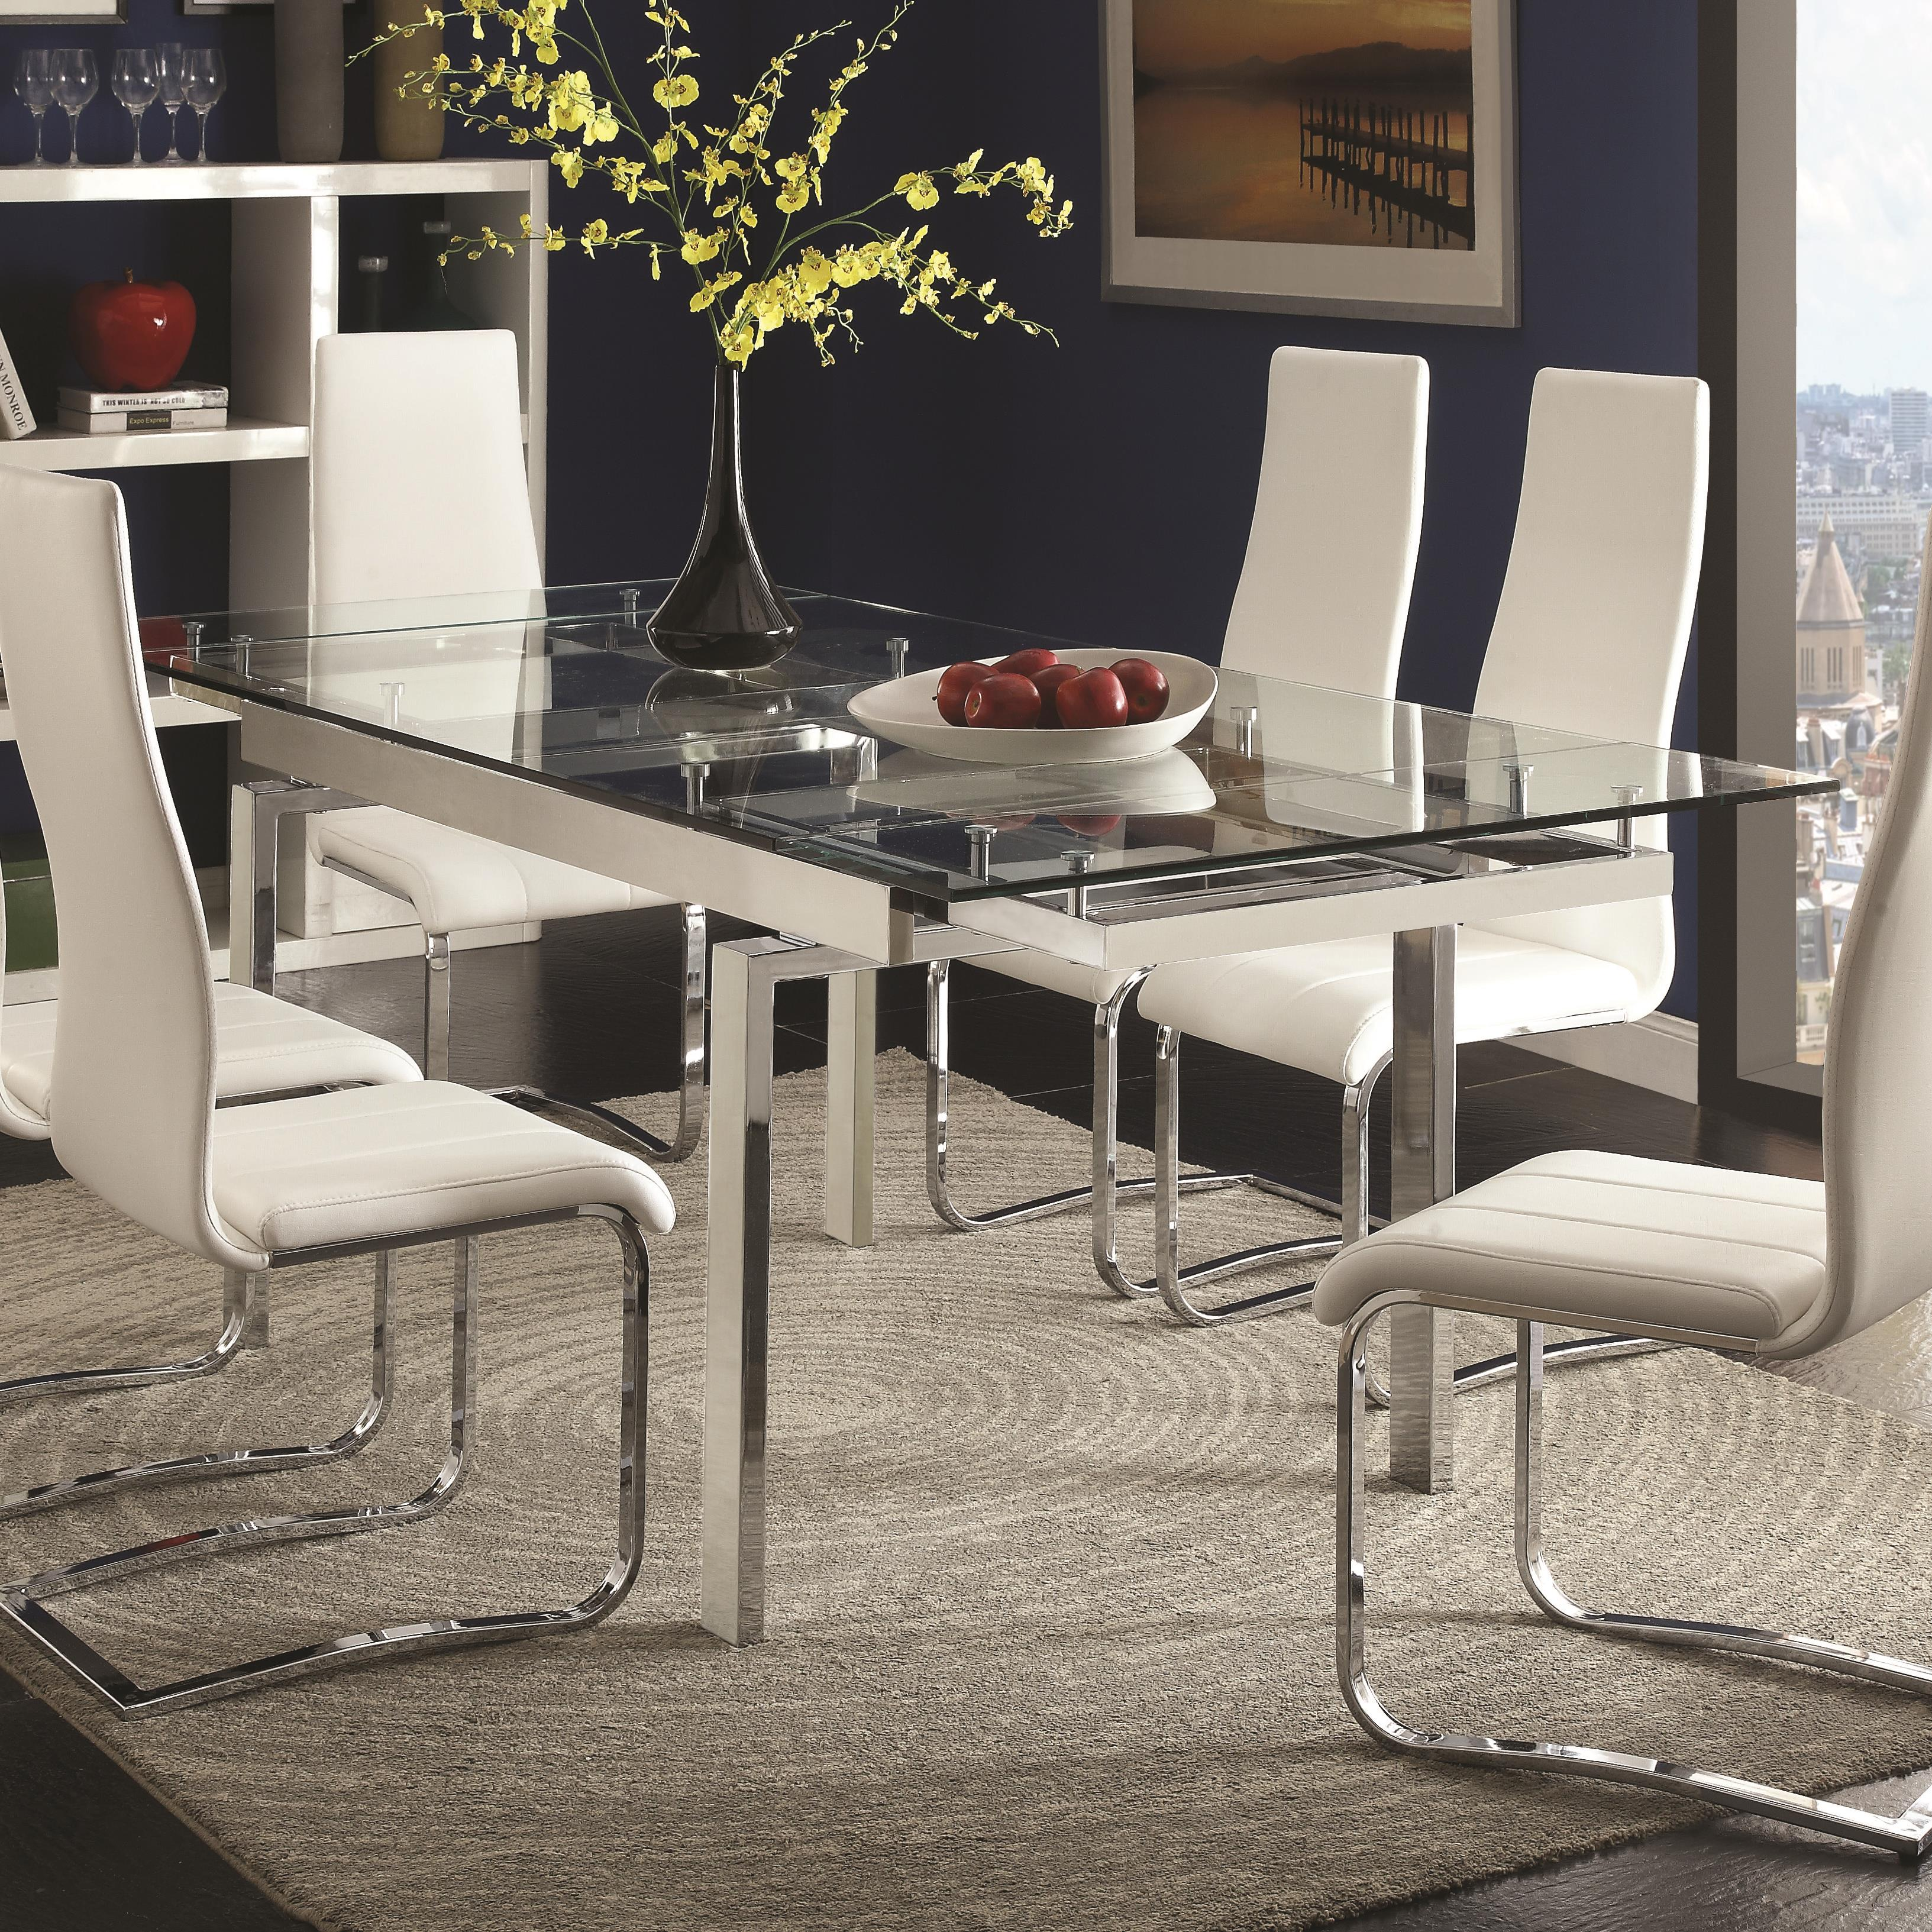 Dining Table Prices: Modern Dining Contemporary Glass Dining Table With Leaves